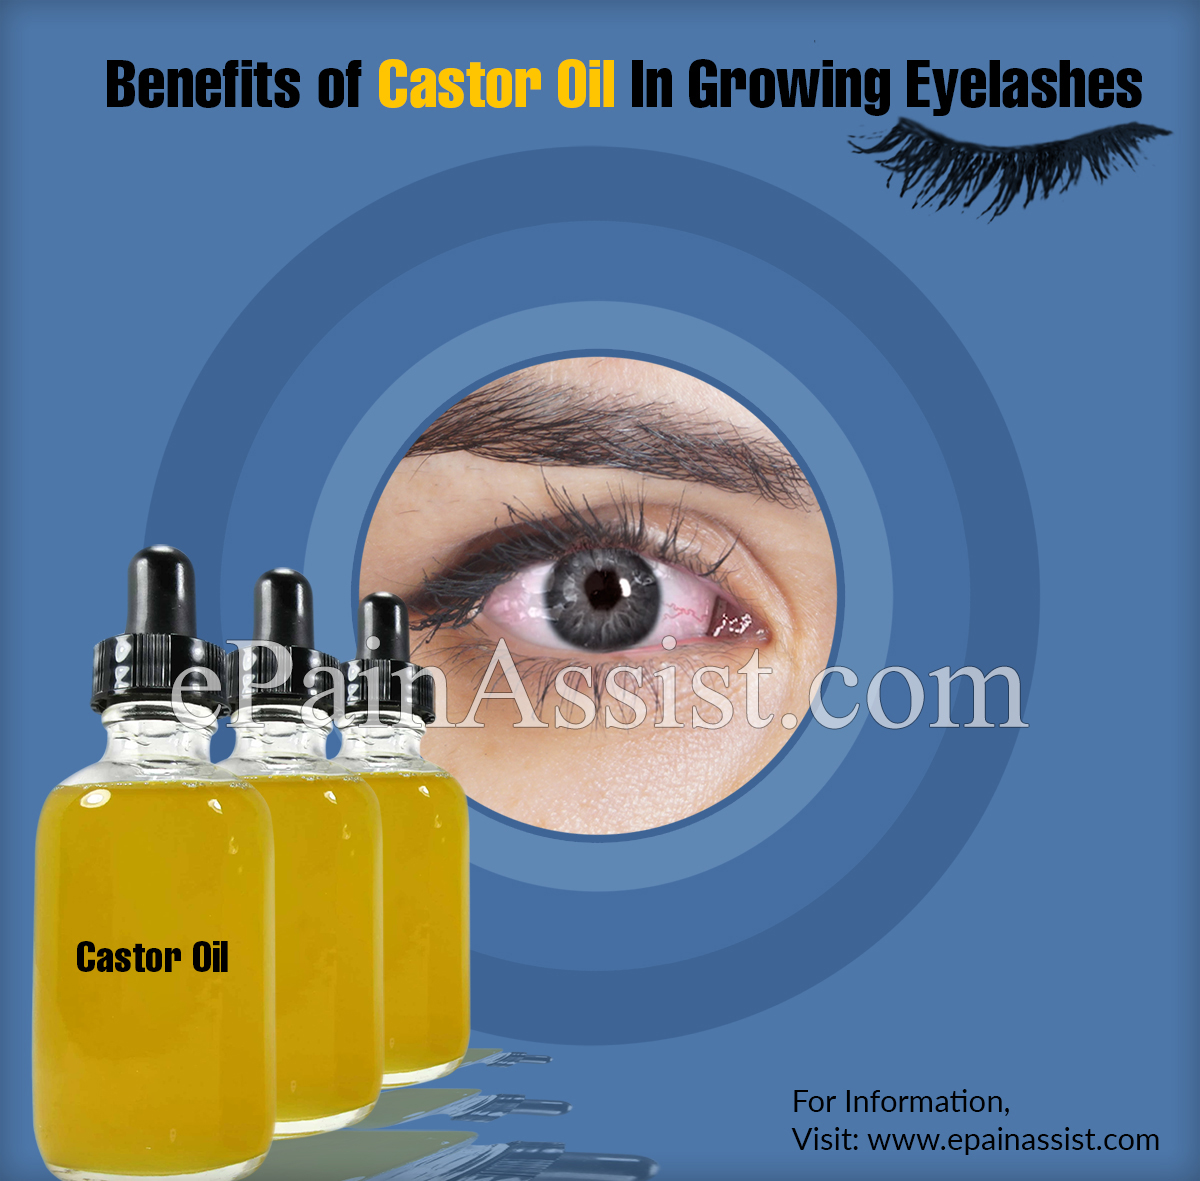 Benefits of Castor Oil In Growing Eyelashes & Ways to Apply